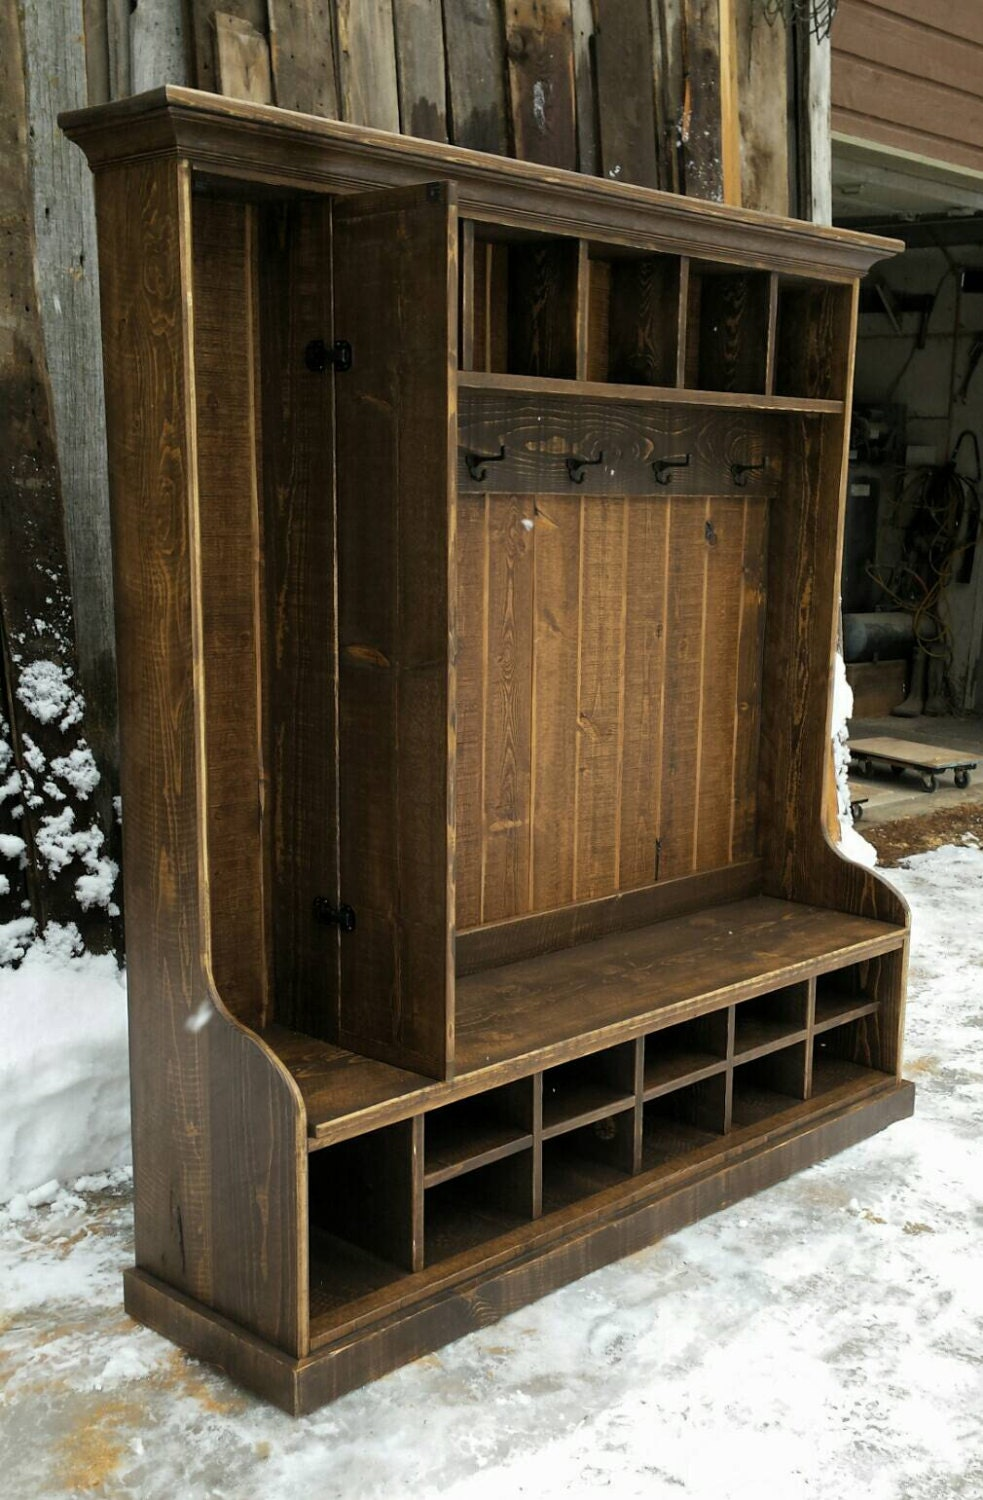 Rustic Reclaimed Hall Tree Locker Bench By Echopeakdesign On Etsy